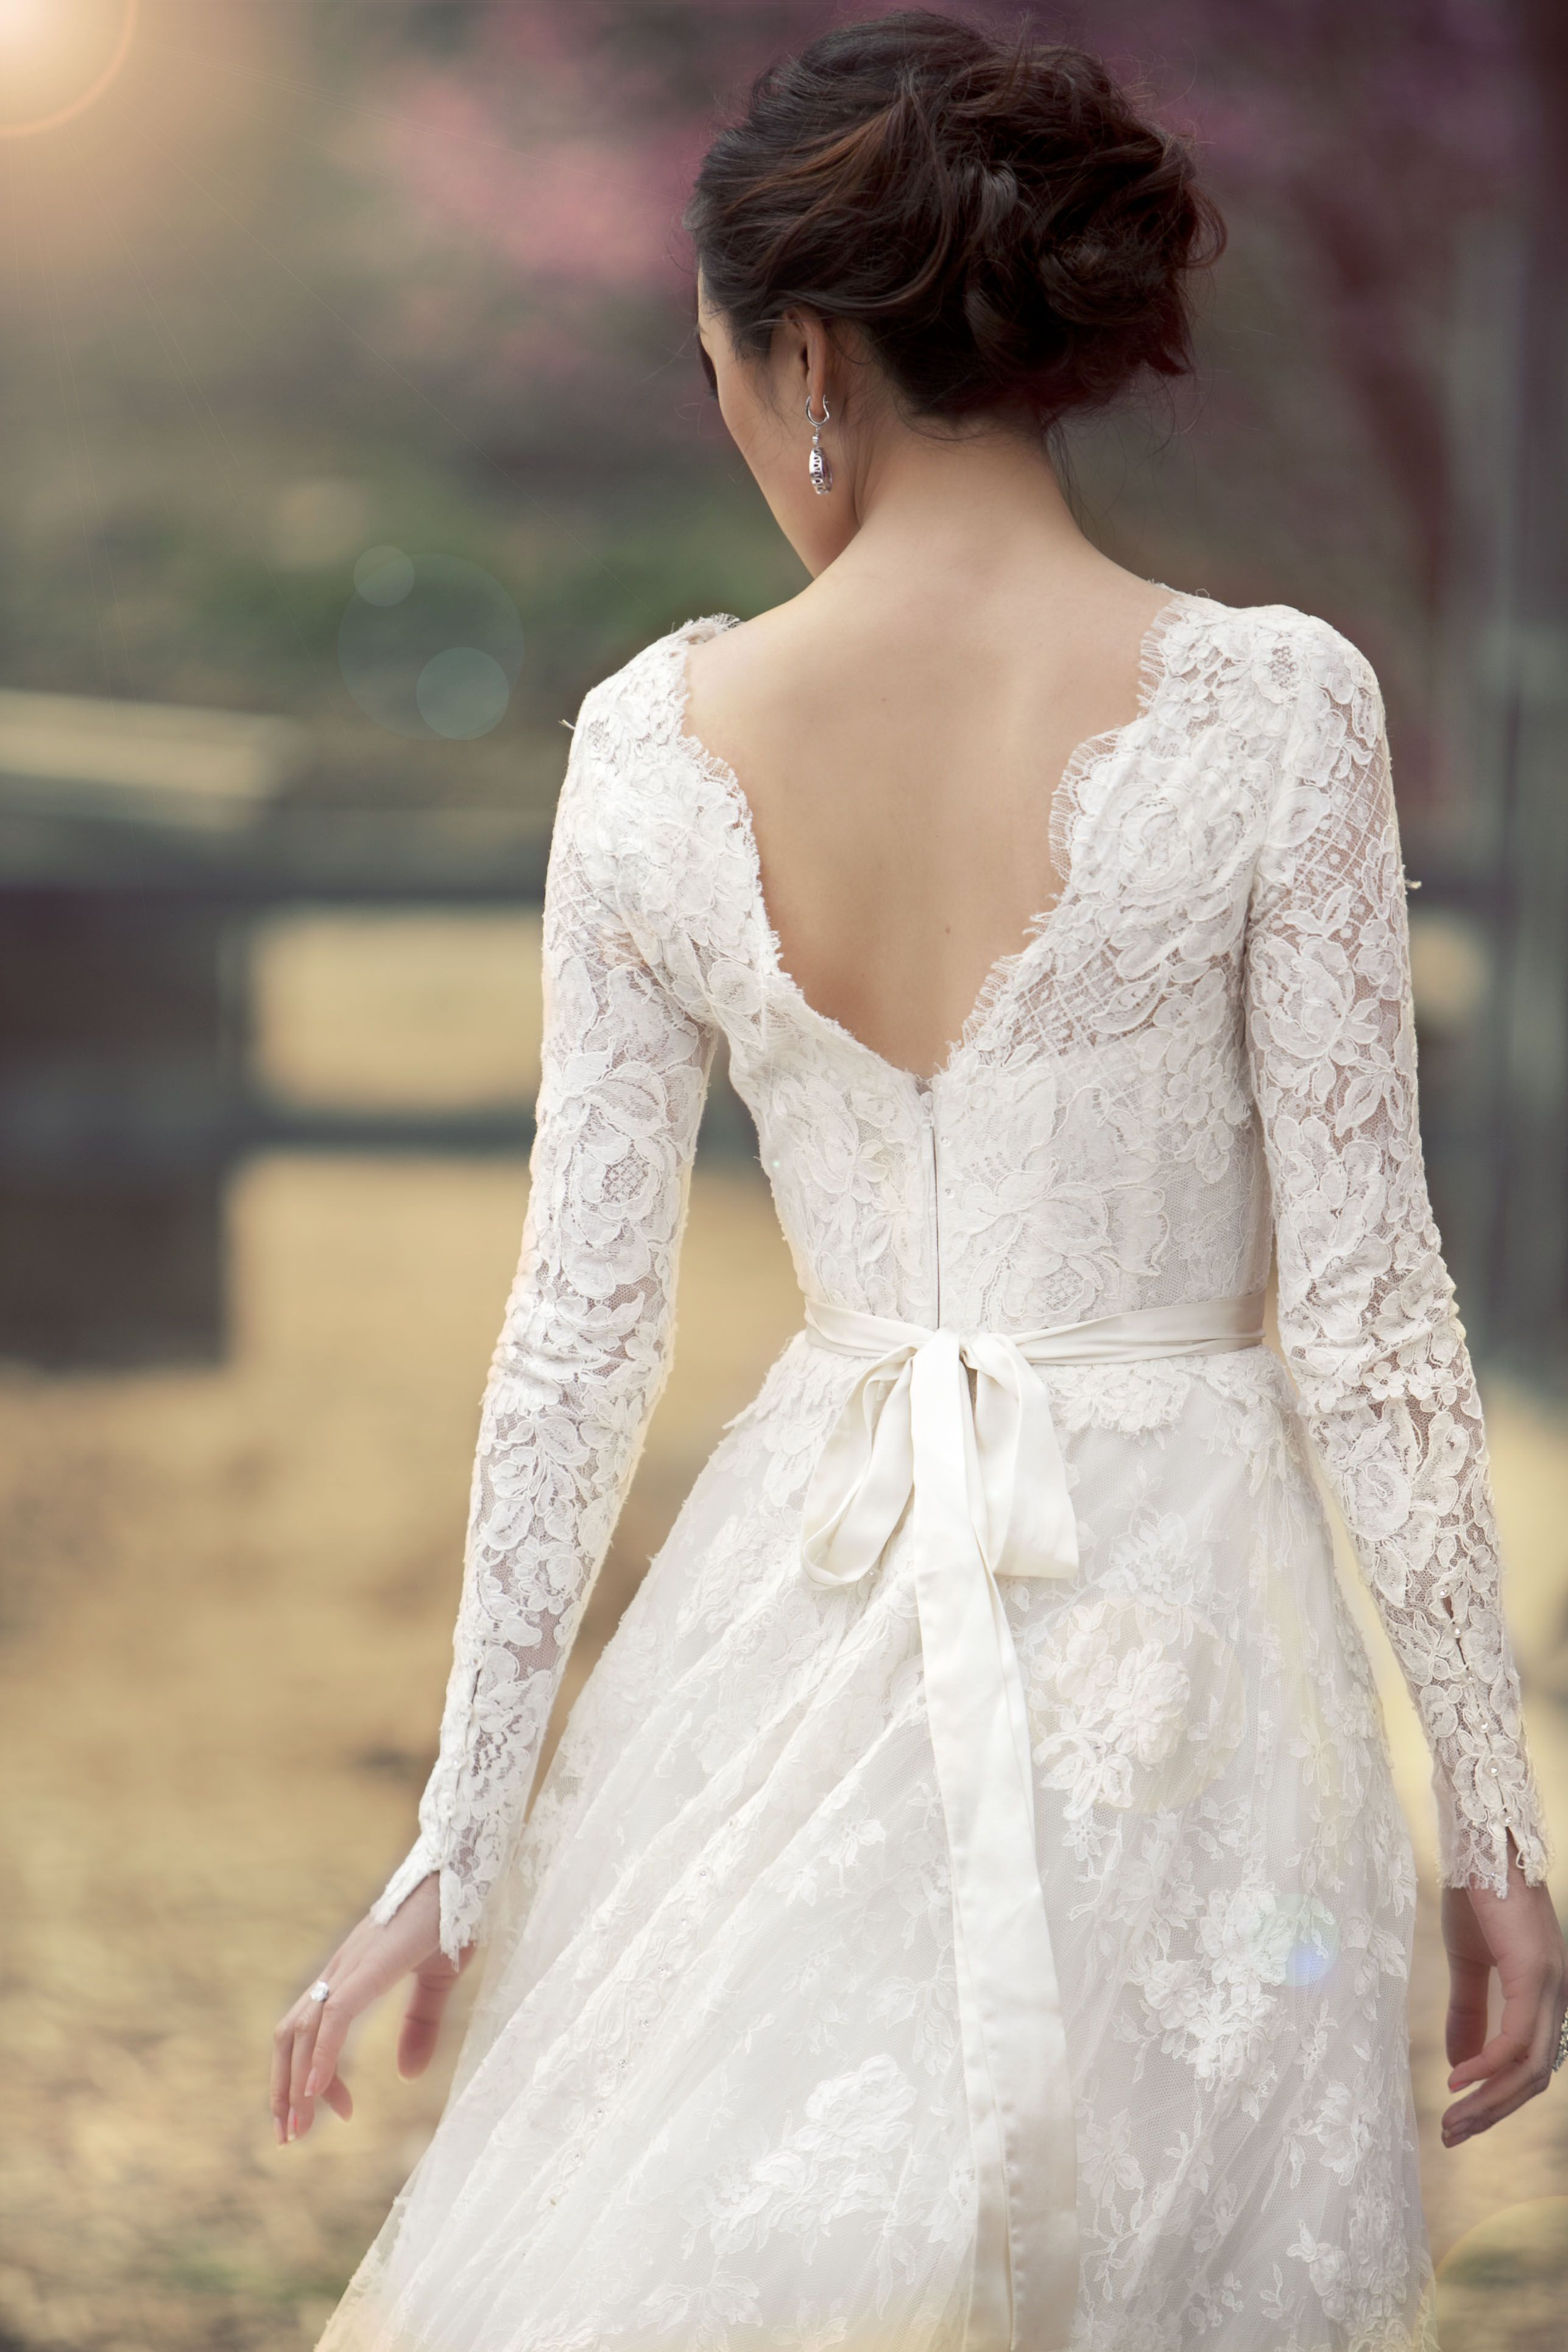 Lace arm wedding dress  Lace sleeves for a winter wedding so pretty  White Weddings